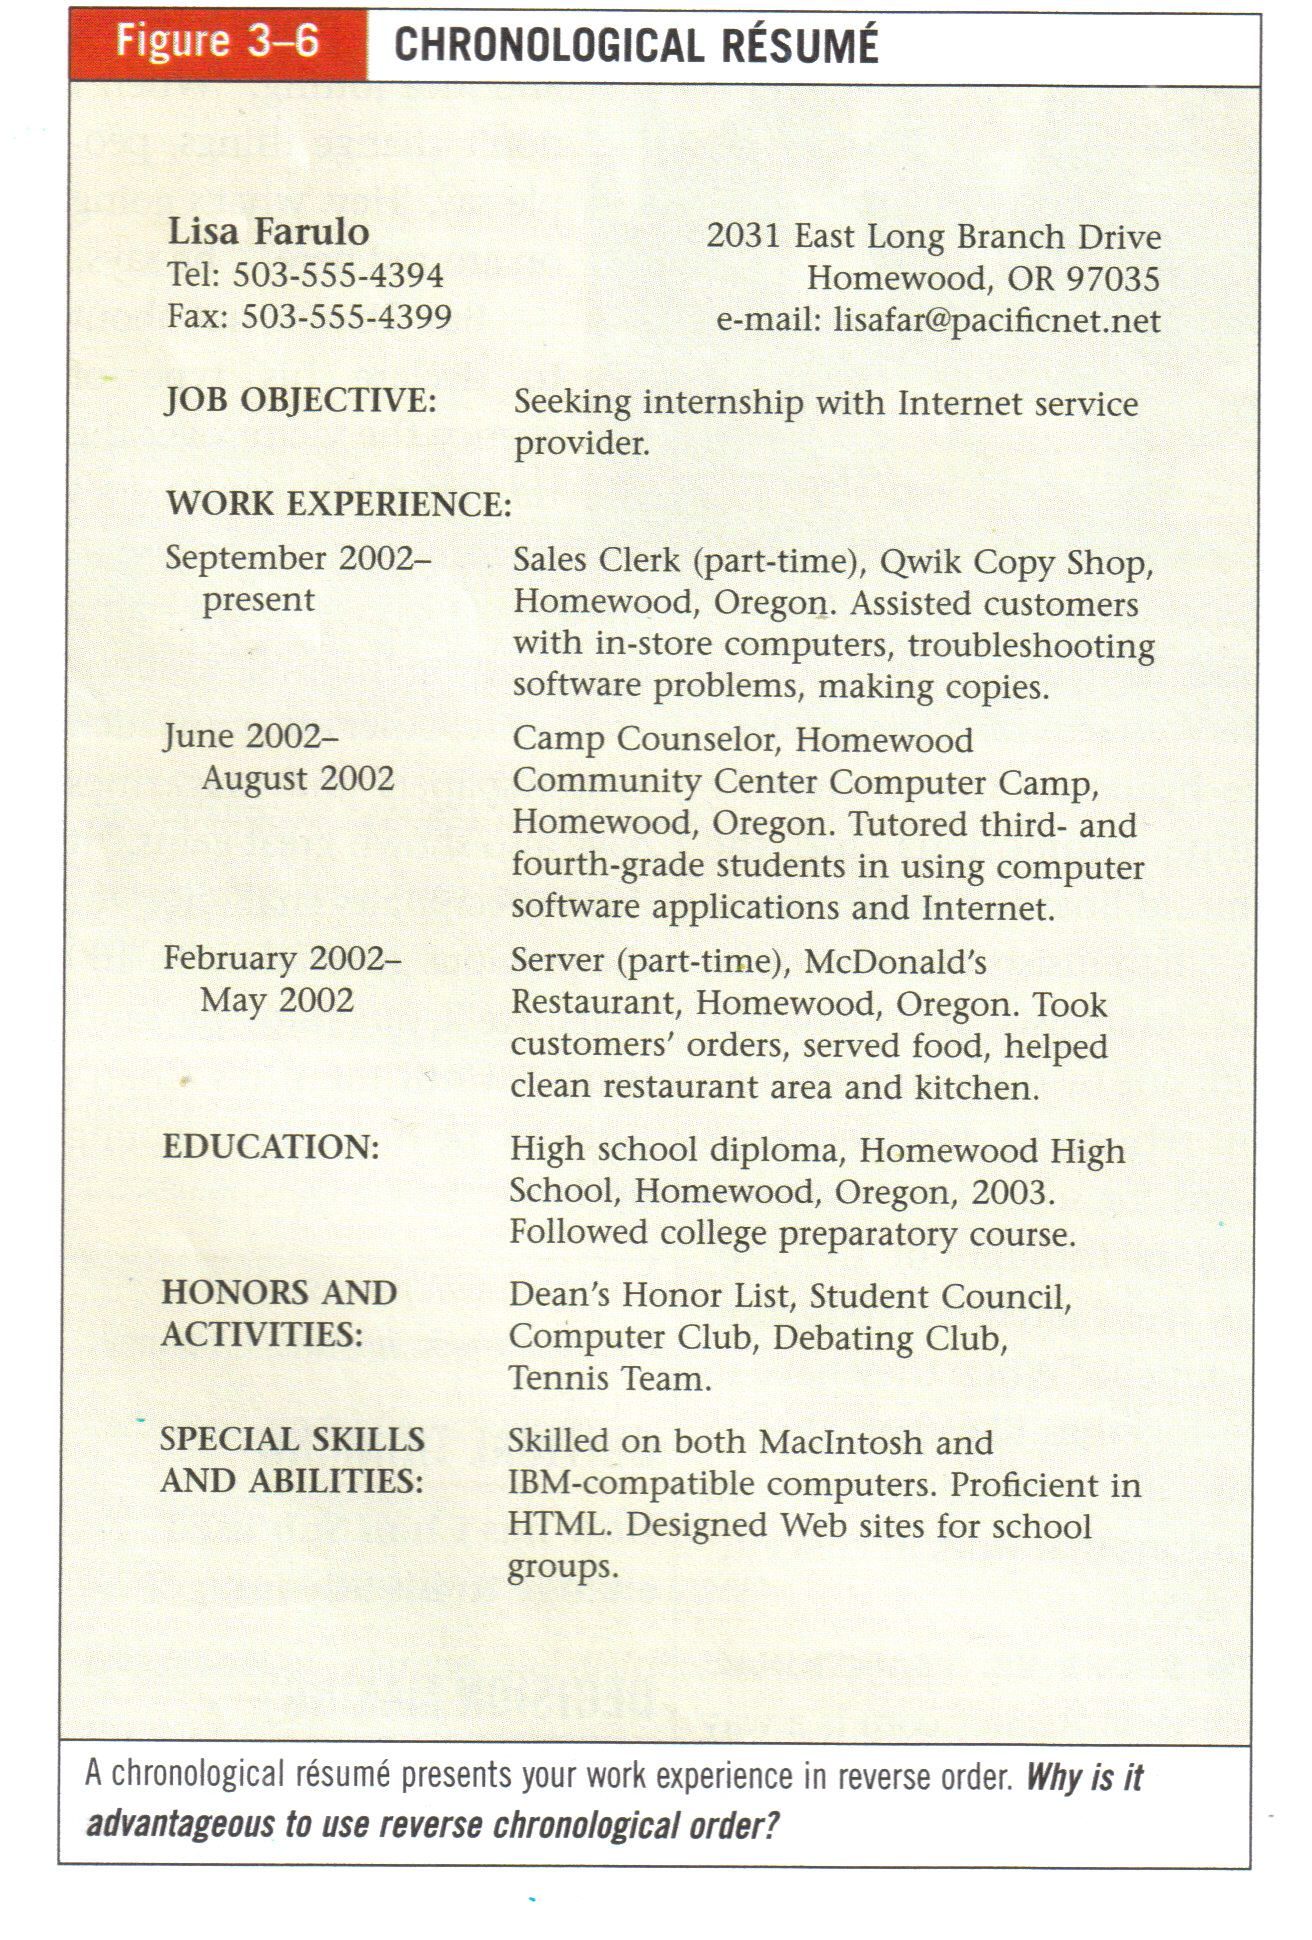 sample chronological resume | career development teaching ideas ... - Examples Of Chronological Resume